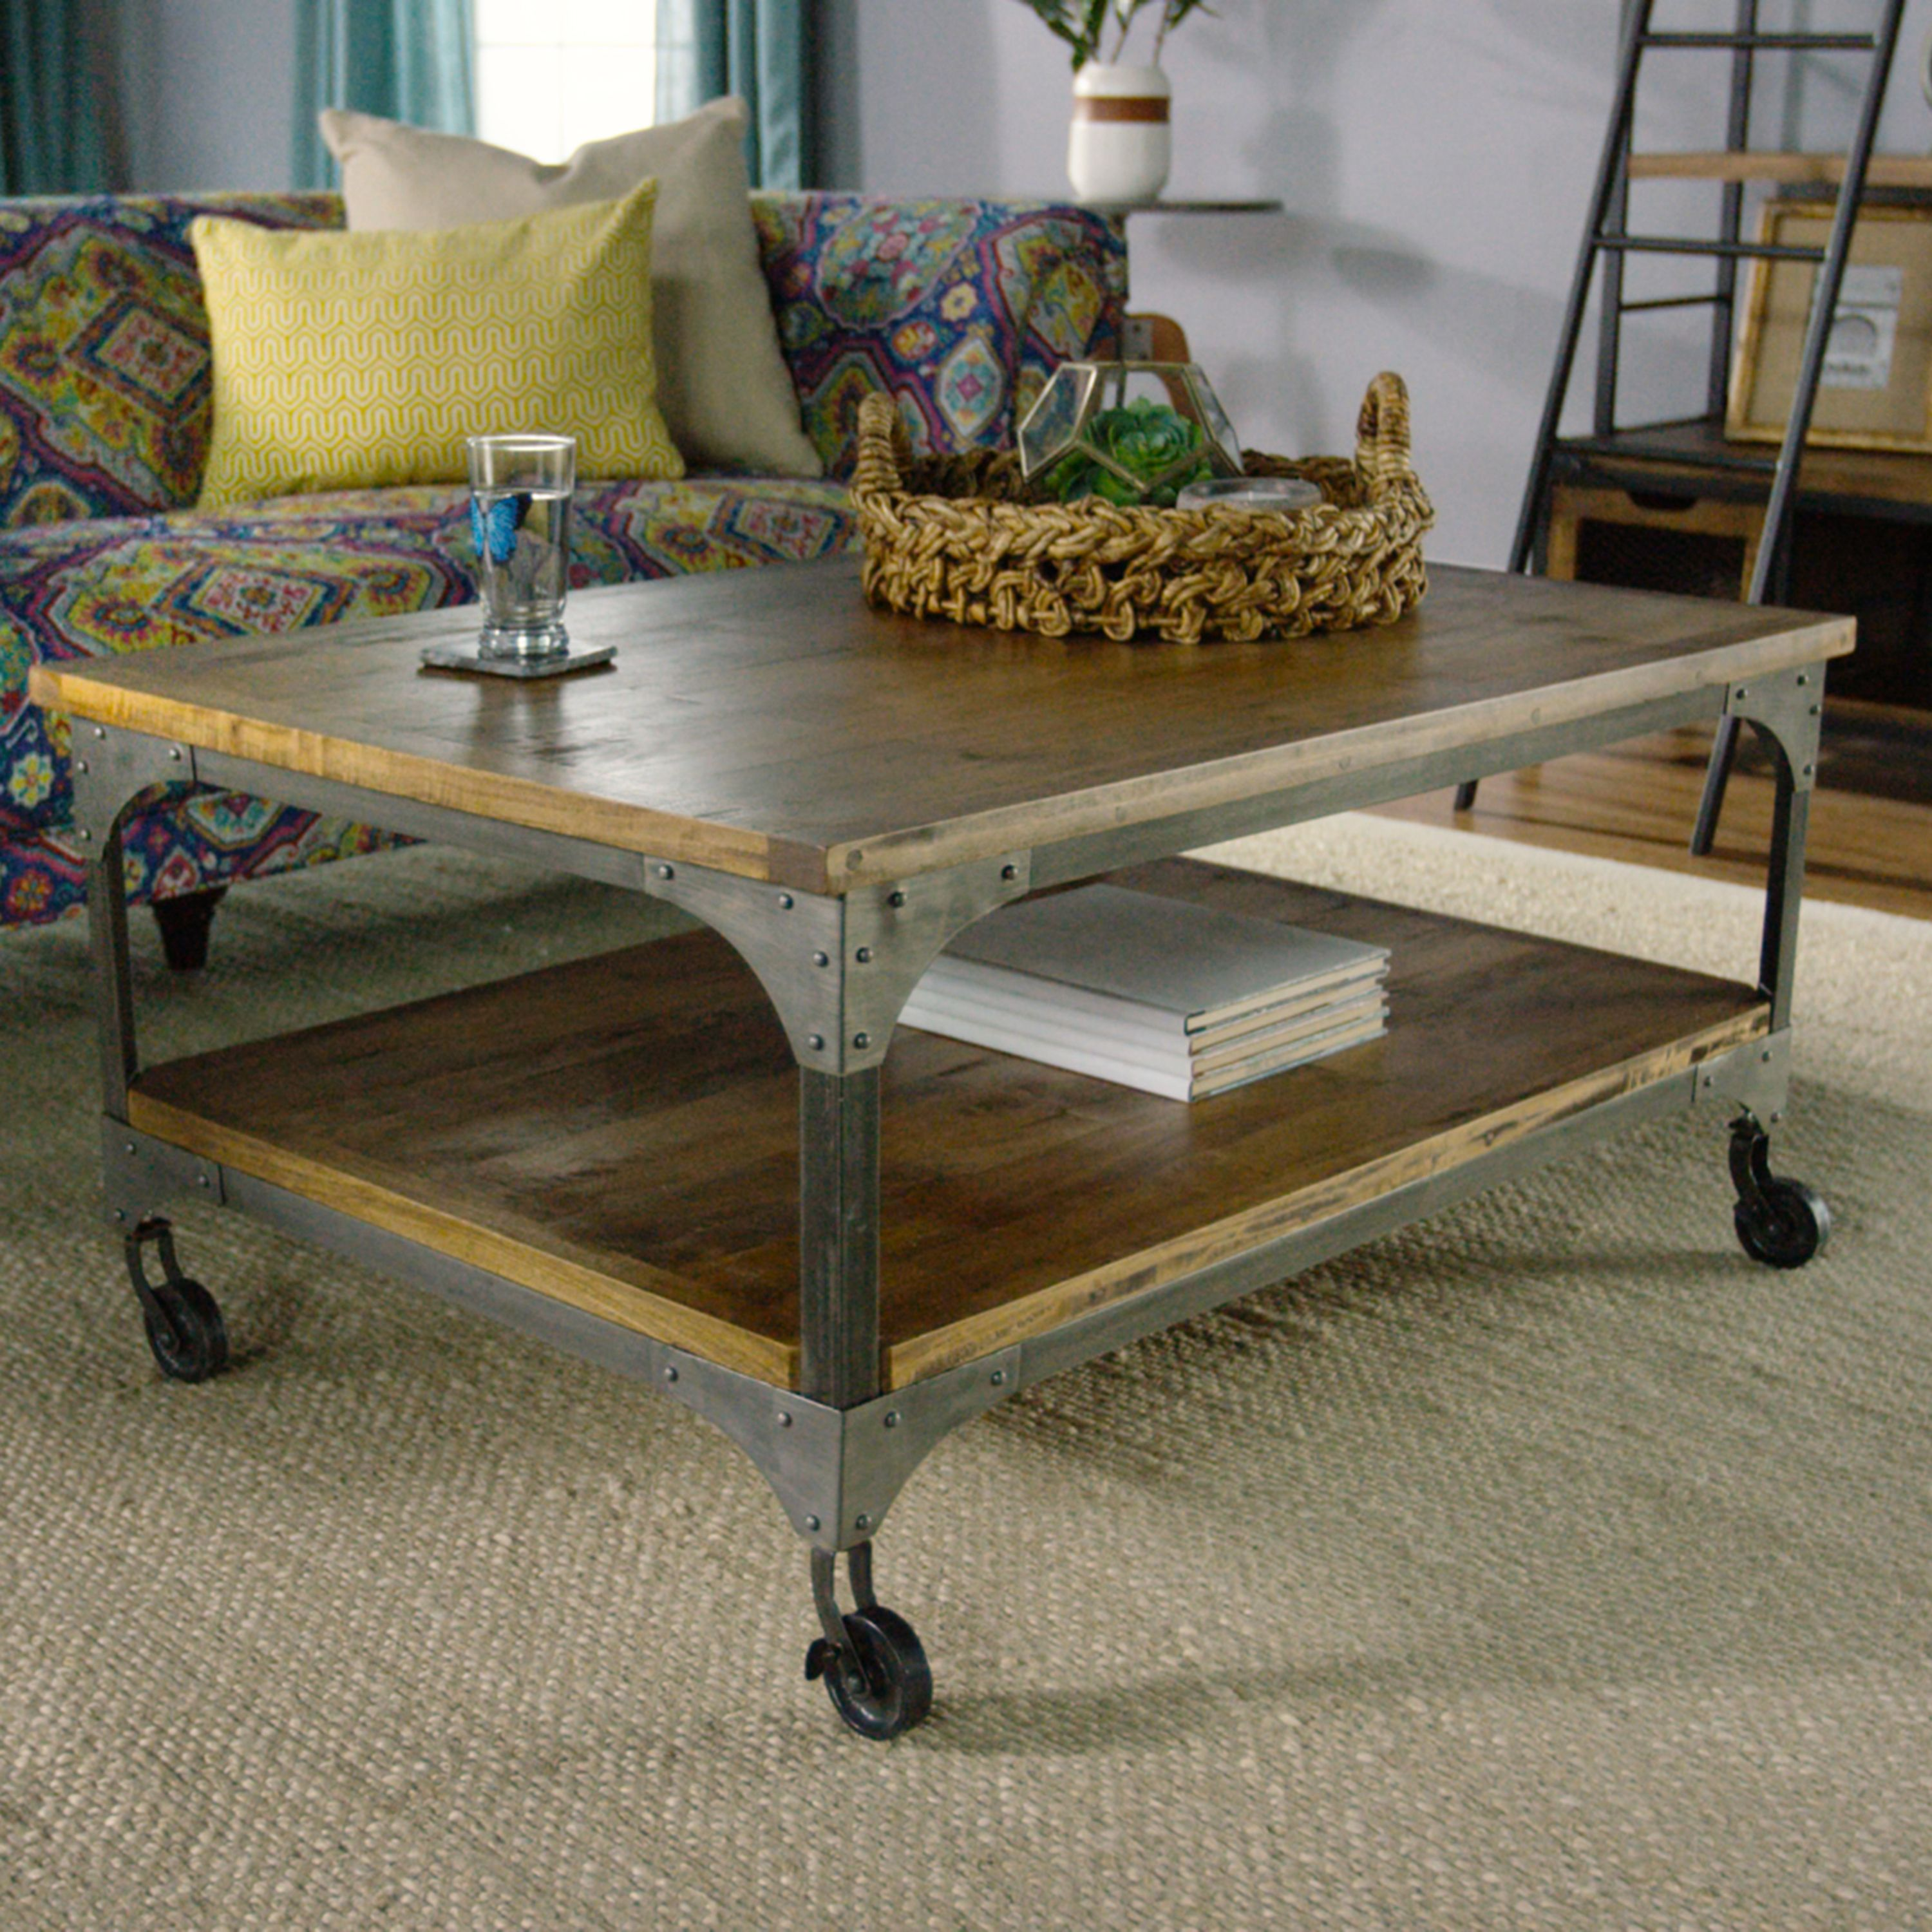 8 Two Chairs And Coffee Table Pictures In 2020 Wood Coffee Table Design Coffee Table Coffee Table Wood